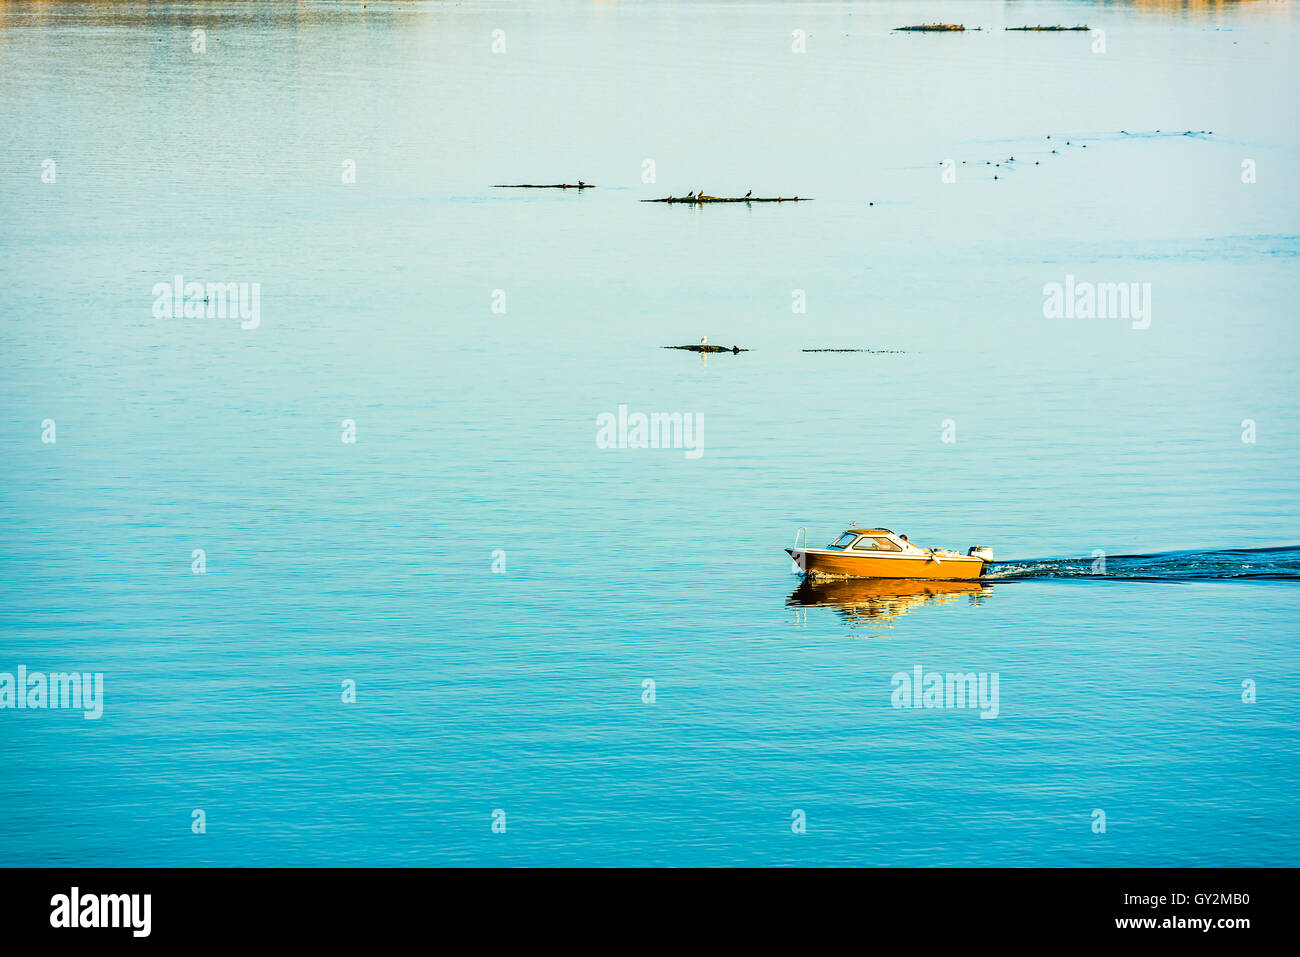 Small motorboat moving slowly through windless sea in the archipelago. - Stock Image